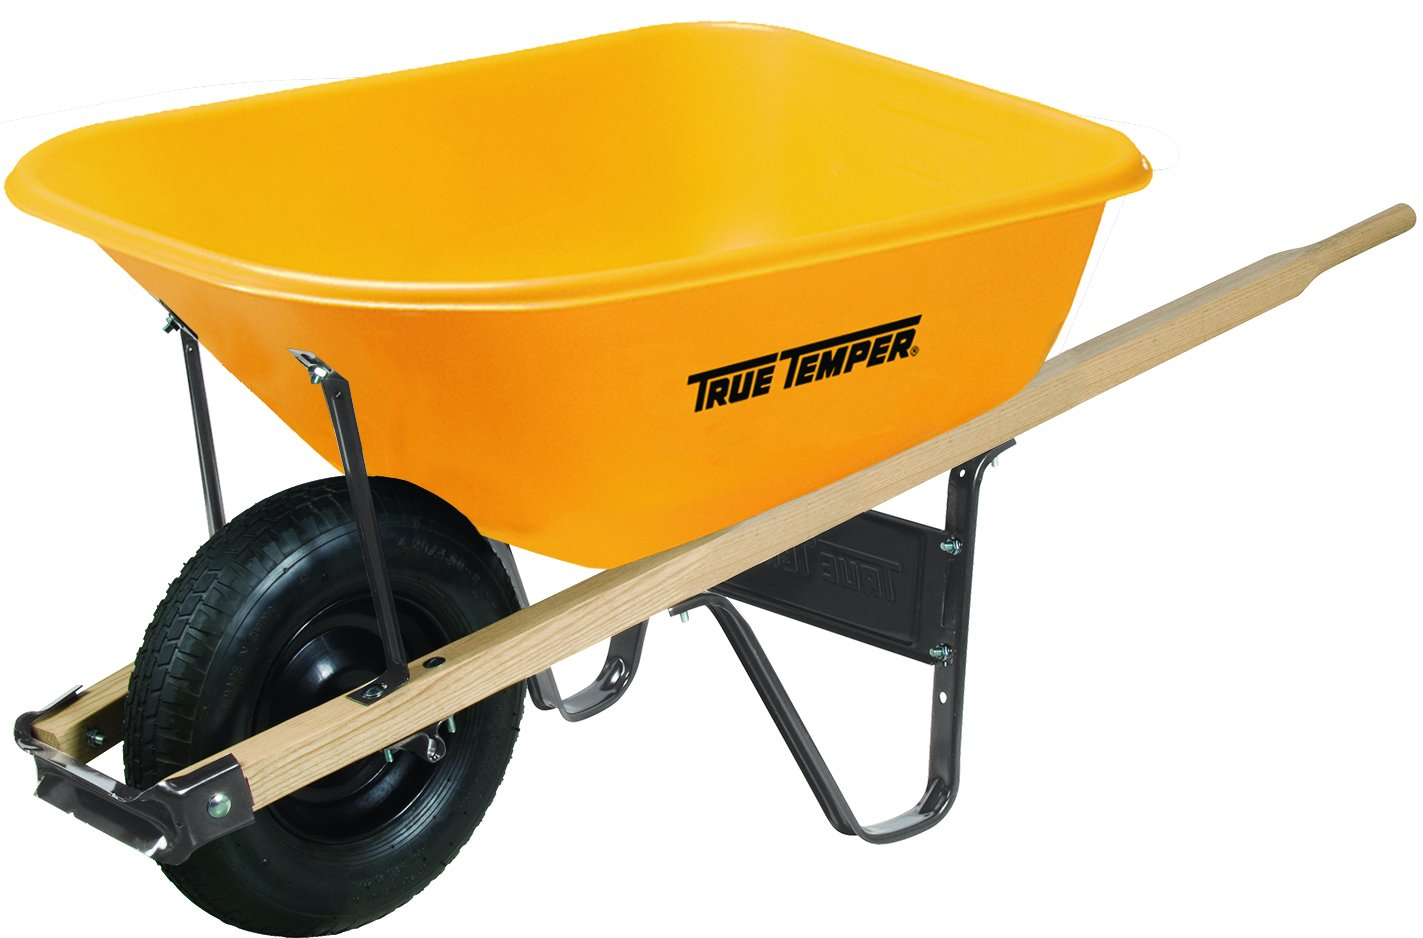 True Temper 6 Cubic Foot Poly Wheelbarrow  -  RP625 by The AMES Companies, Inc